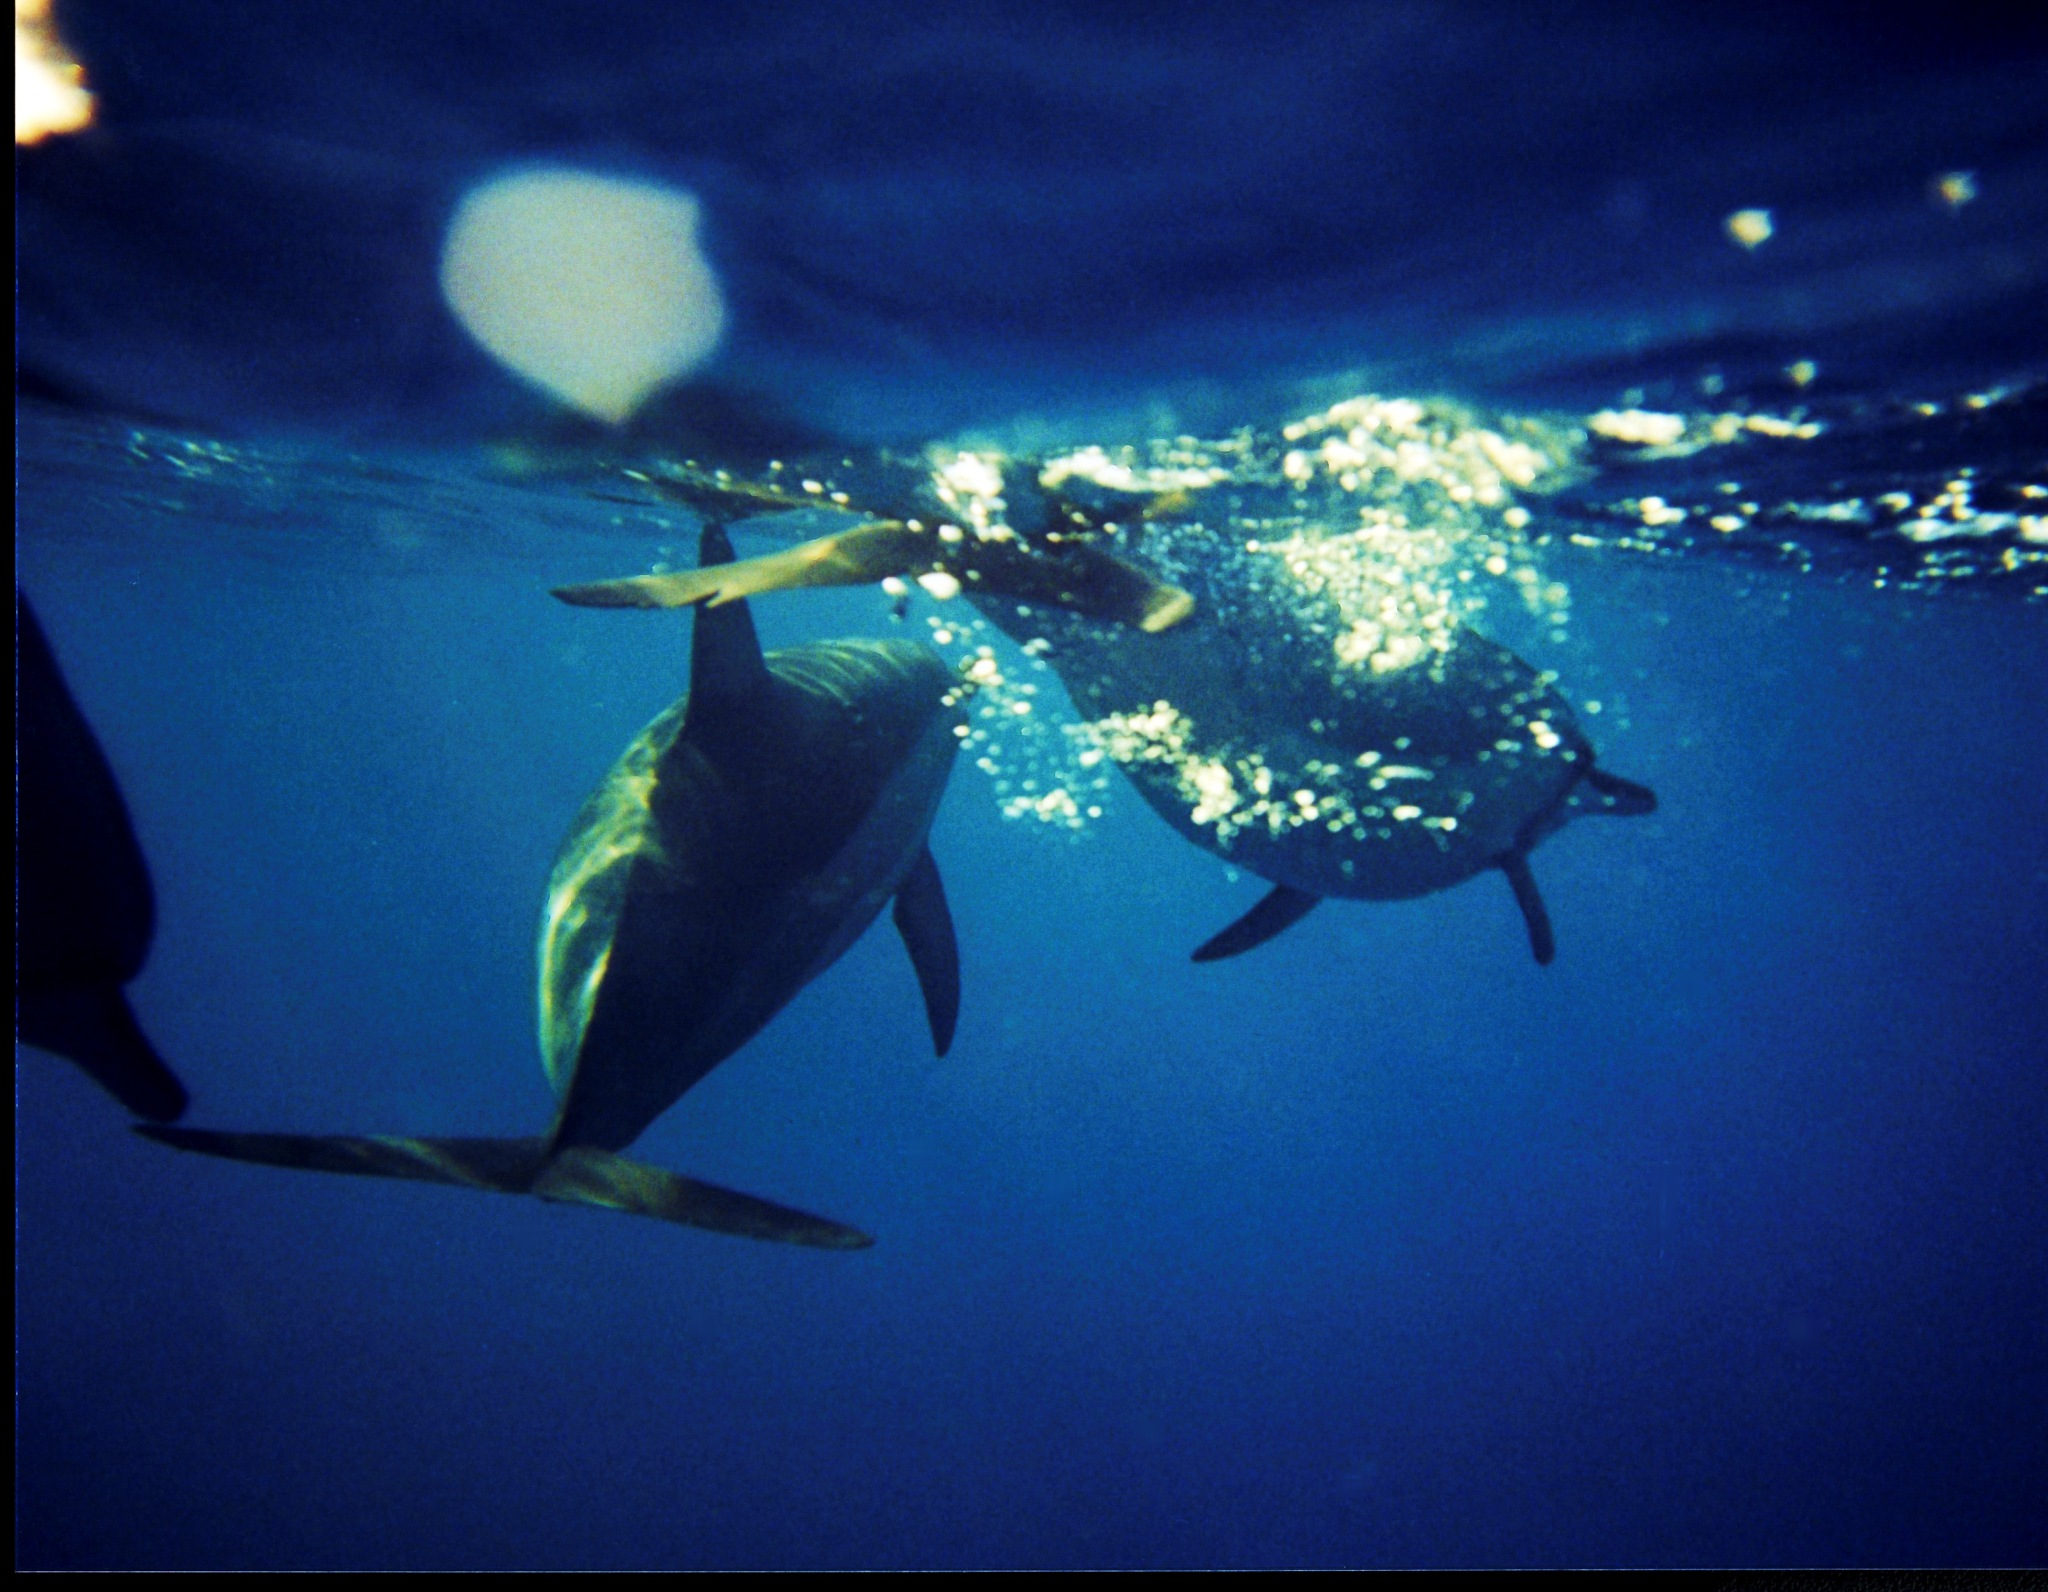 Morning swim with my friends, iif its not bottlenose dolphins who know me its turtles, sometimes I s by Miloliidrifter